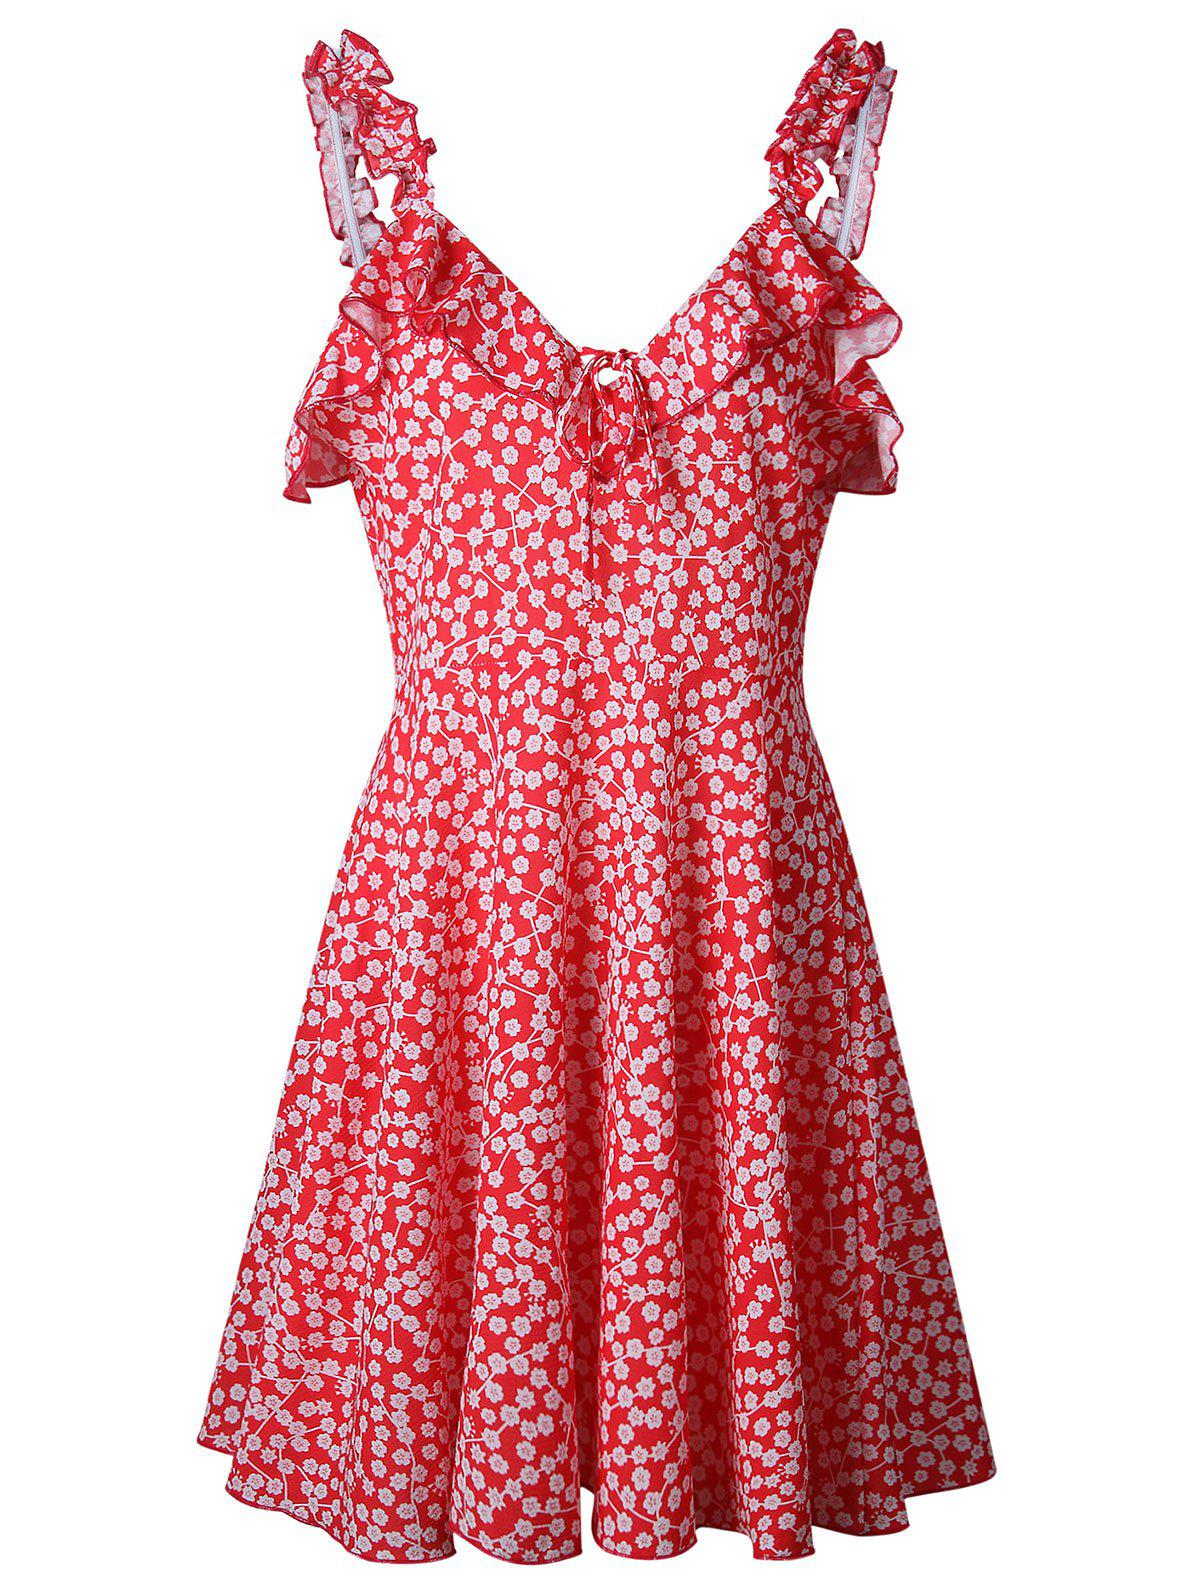 Ruffle Floral Shift Dress - RED XL